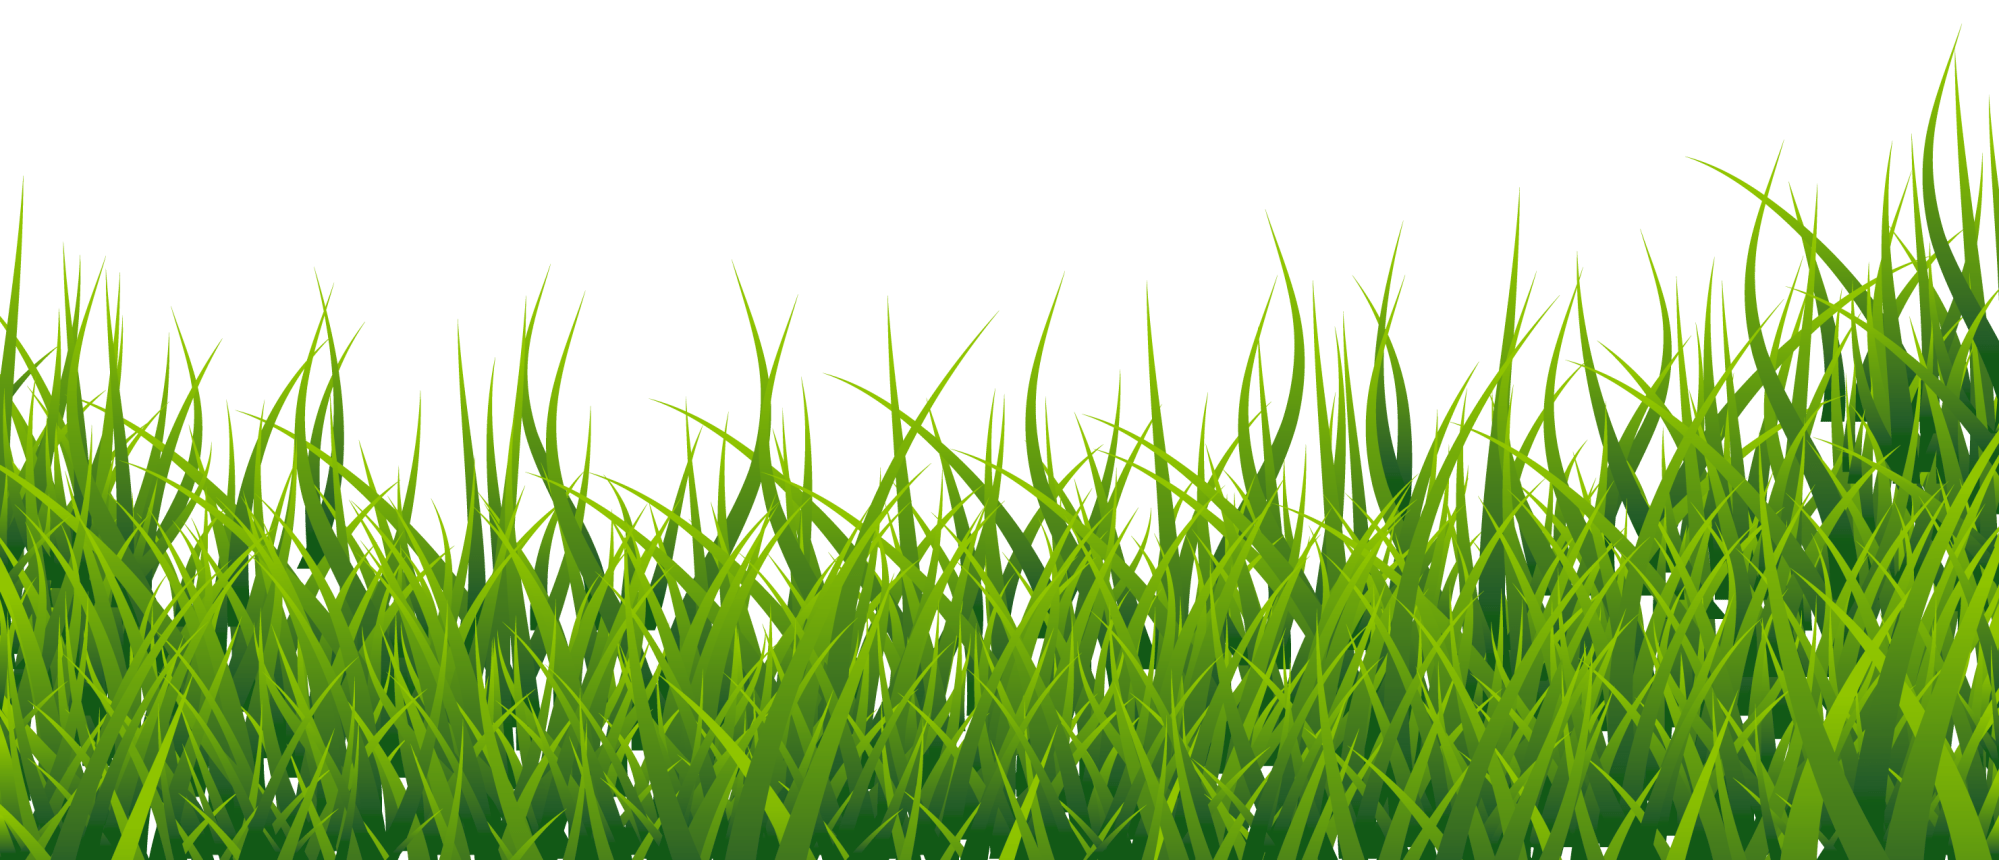 hight resolution of free clip art grass clipart image